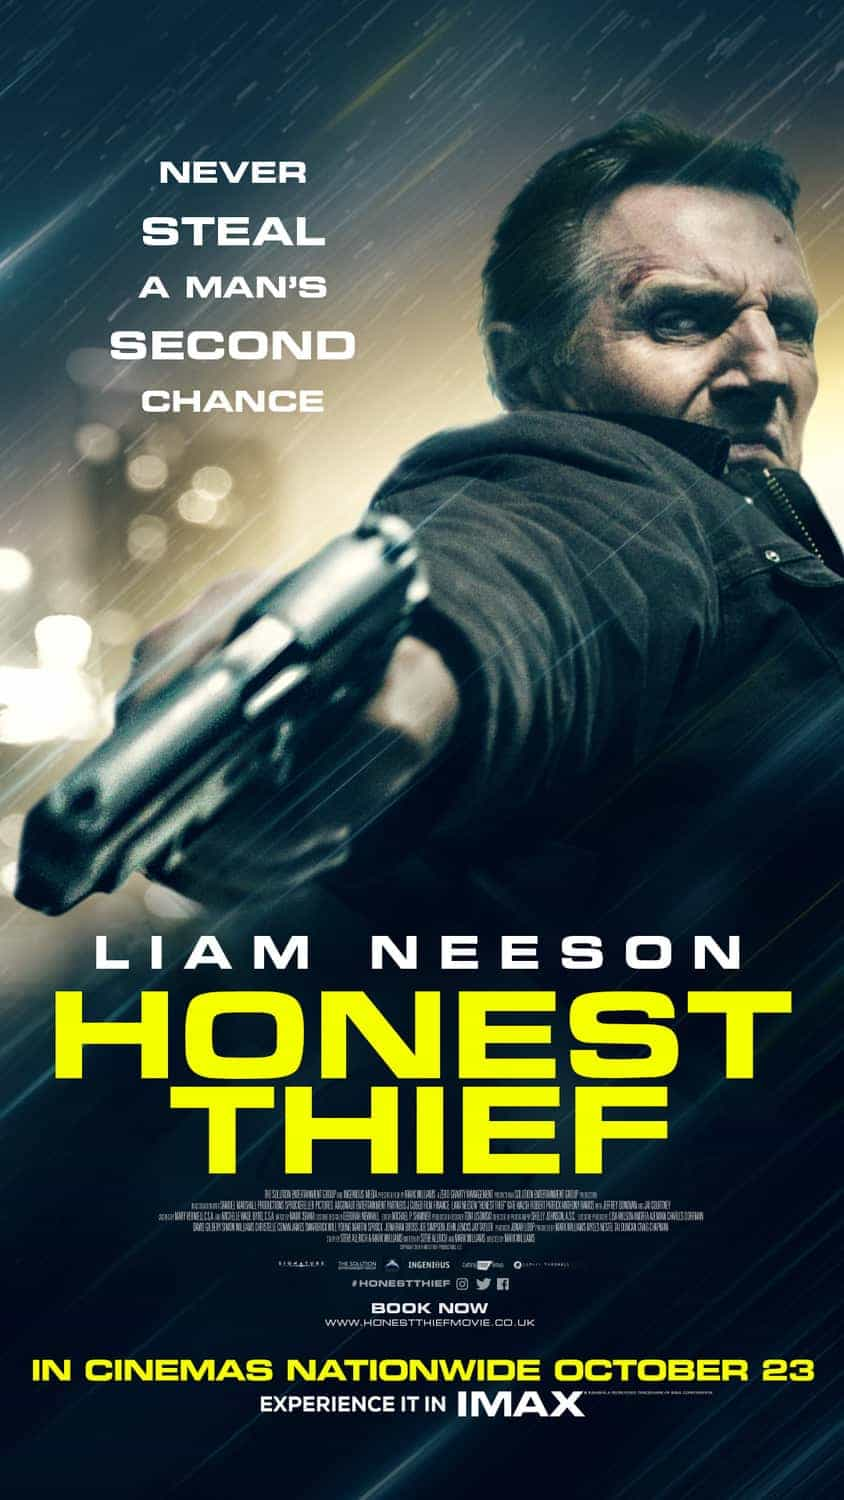 US Box Office Figures 23rd - 25th October 2020:  Honst Thief remains at the top of the US box office with The Empty Man the top new movie at 4